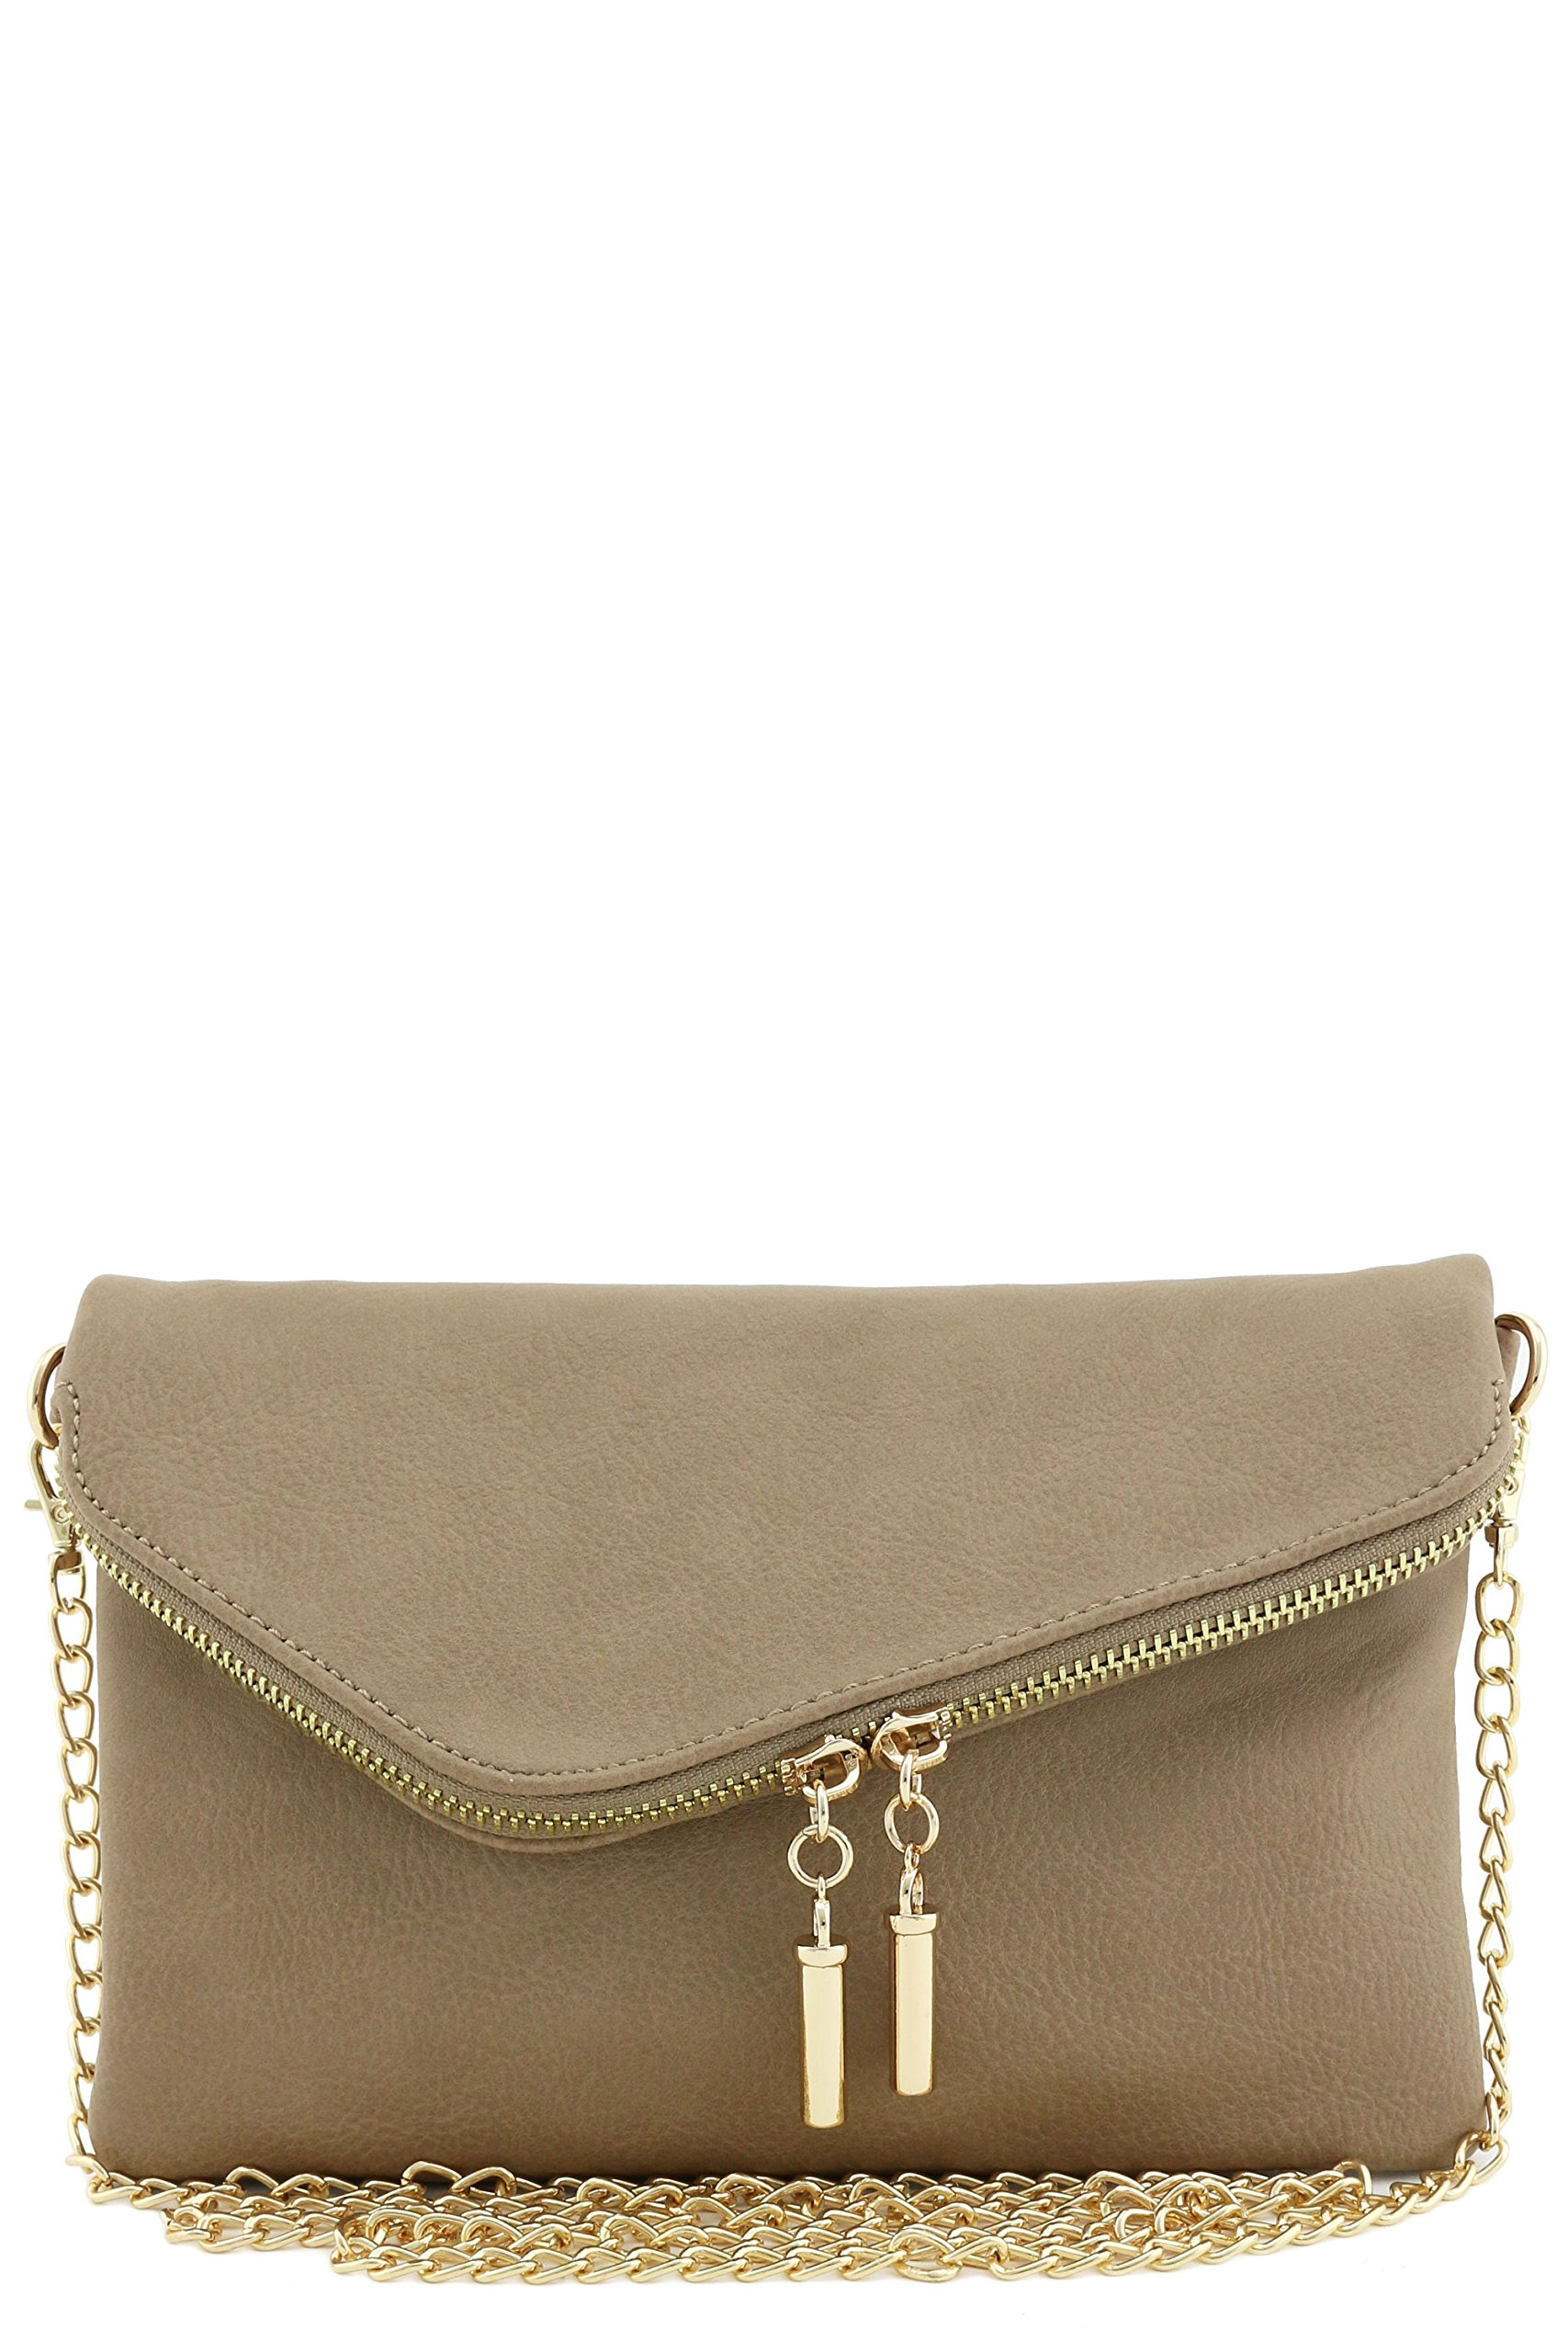 Envelope Wristlet Clutch Crossbody Bag with Chain Strap (Dark Brick)